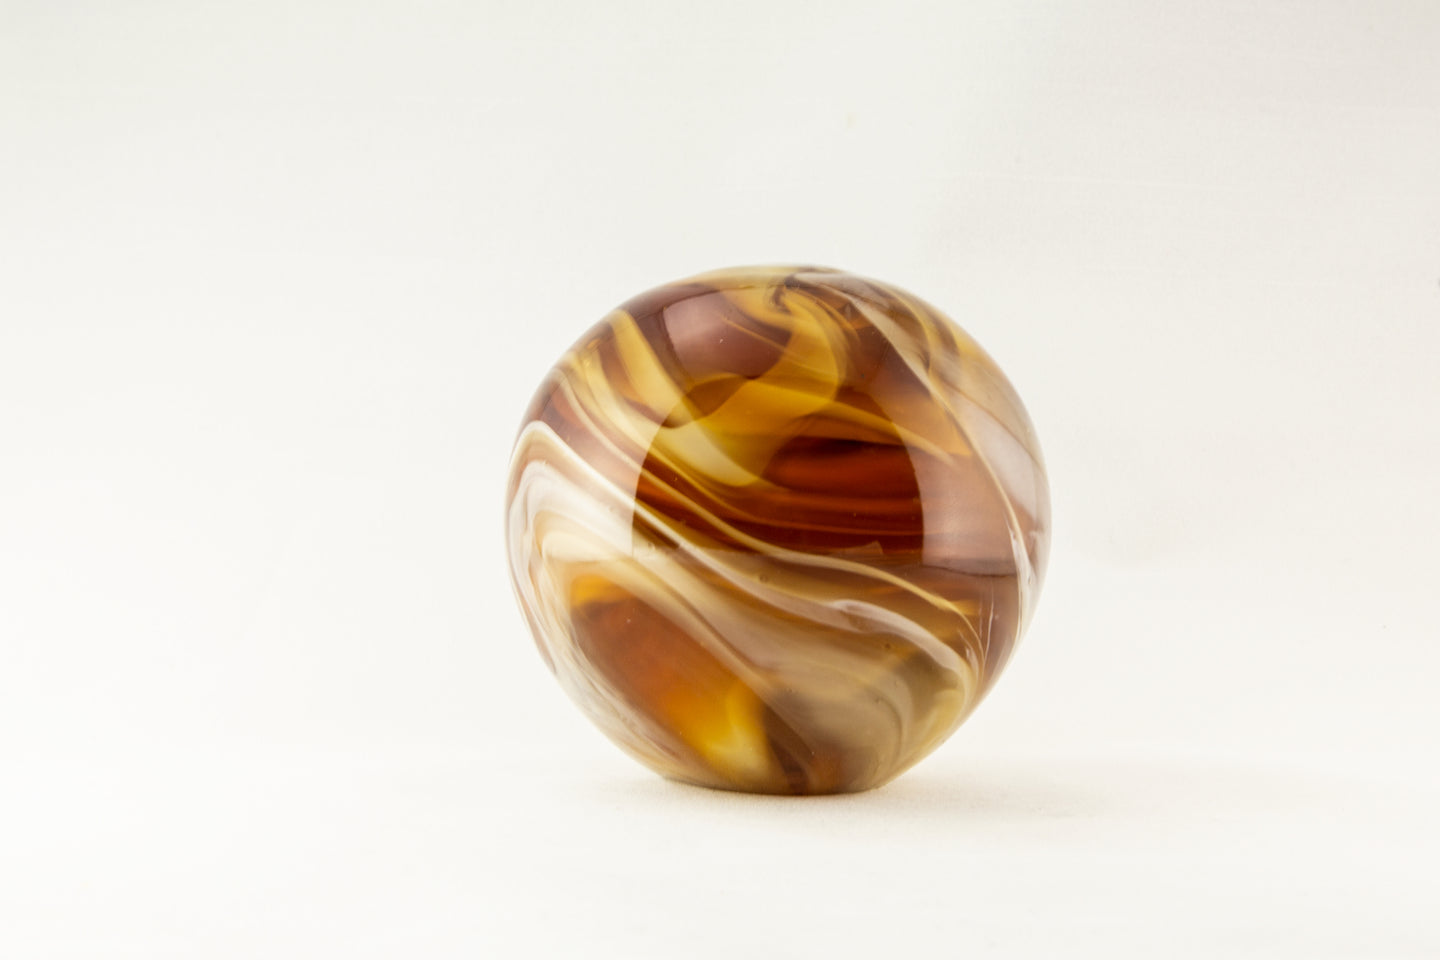 4 INCH SPHERE AMBER SOLID GLASS MURANO-ESQUE SCULPTURE | BROWN/TAN/WHITE | PAPERWEIGHT | DECOR GIFT